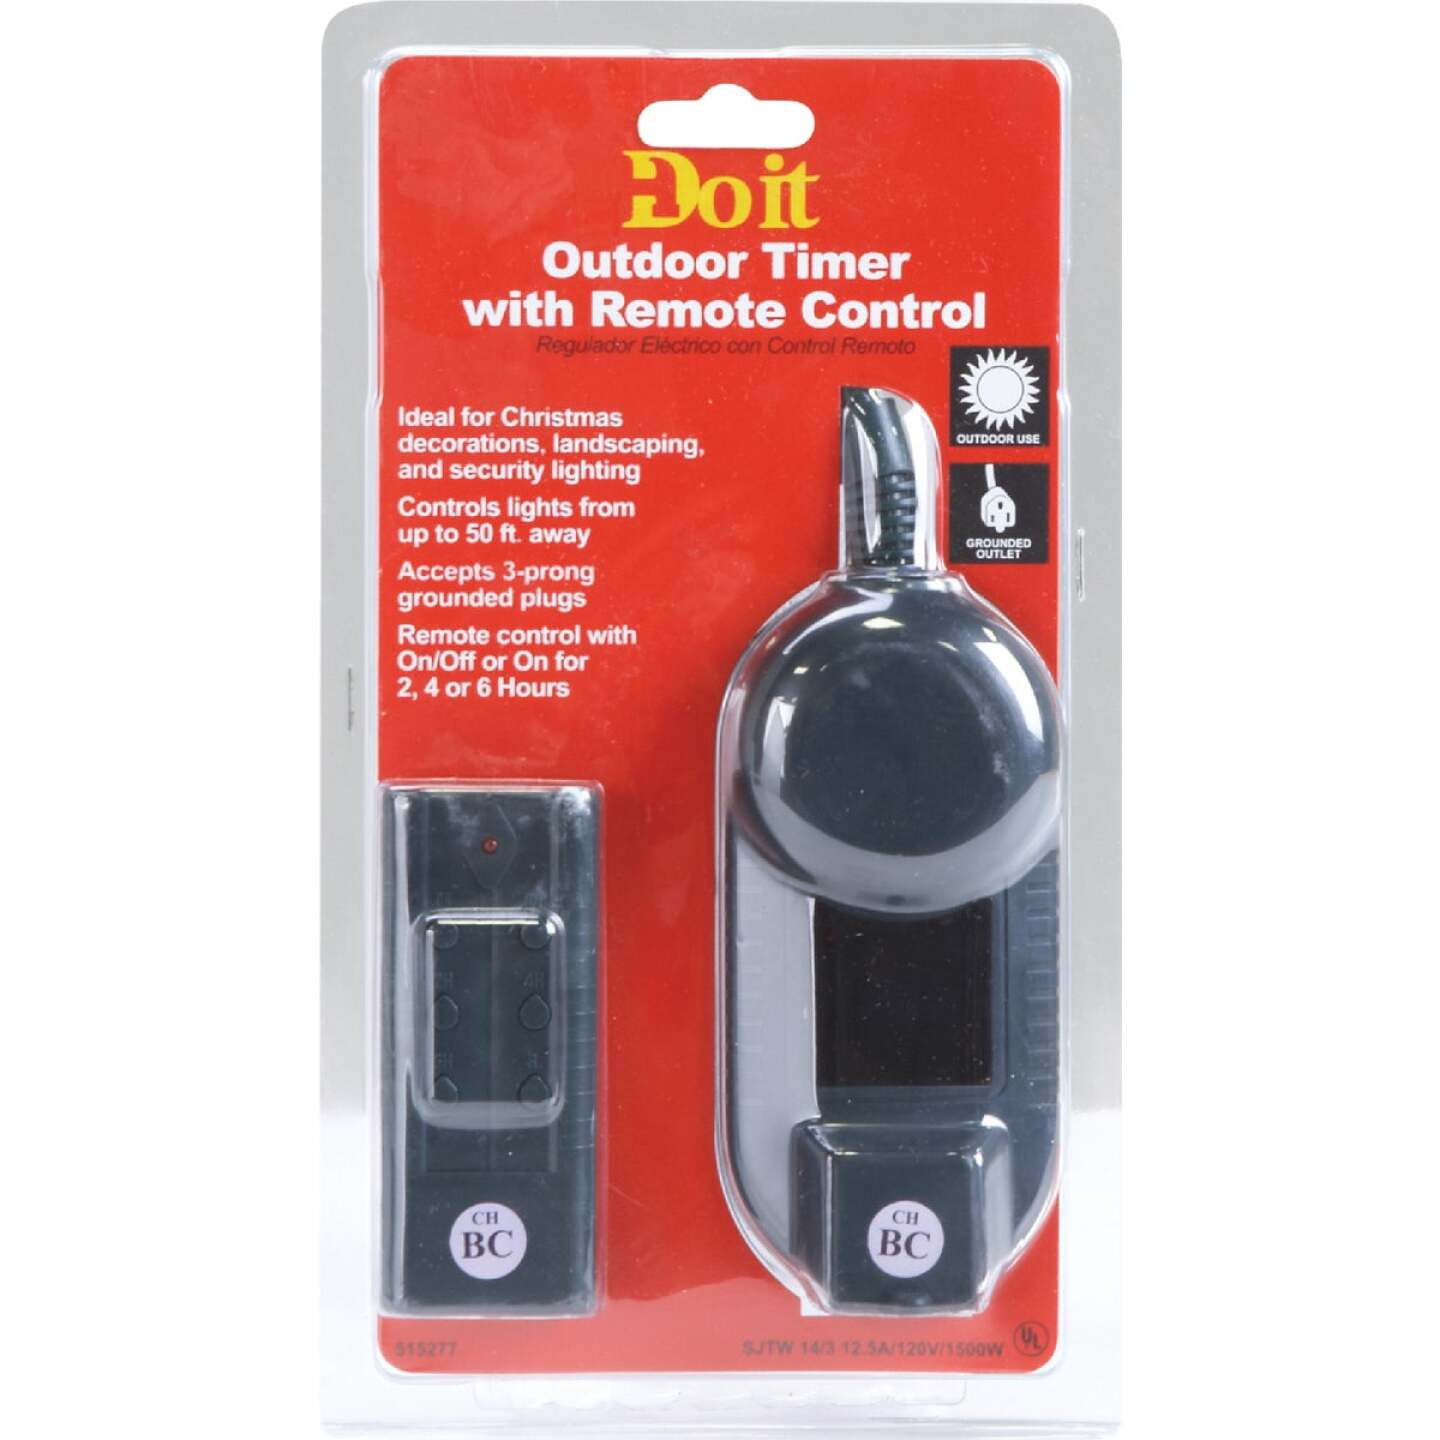 Do it 12.5A 120V 1500W Green Outdoor Timer with Remote Image 2